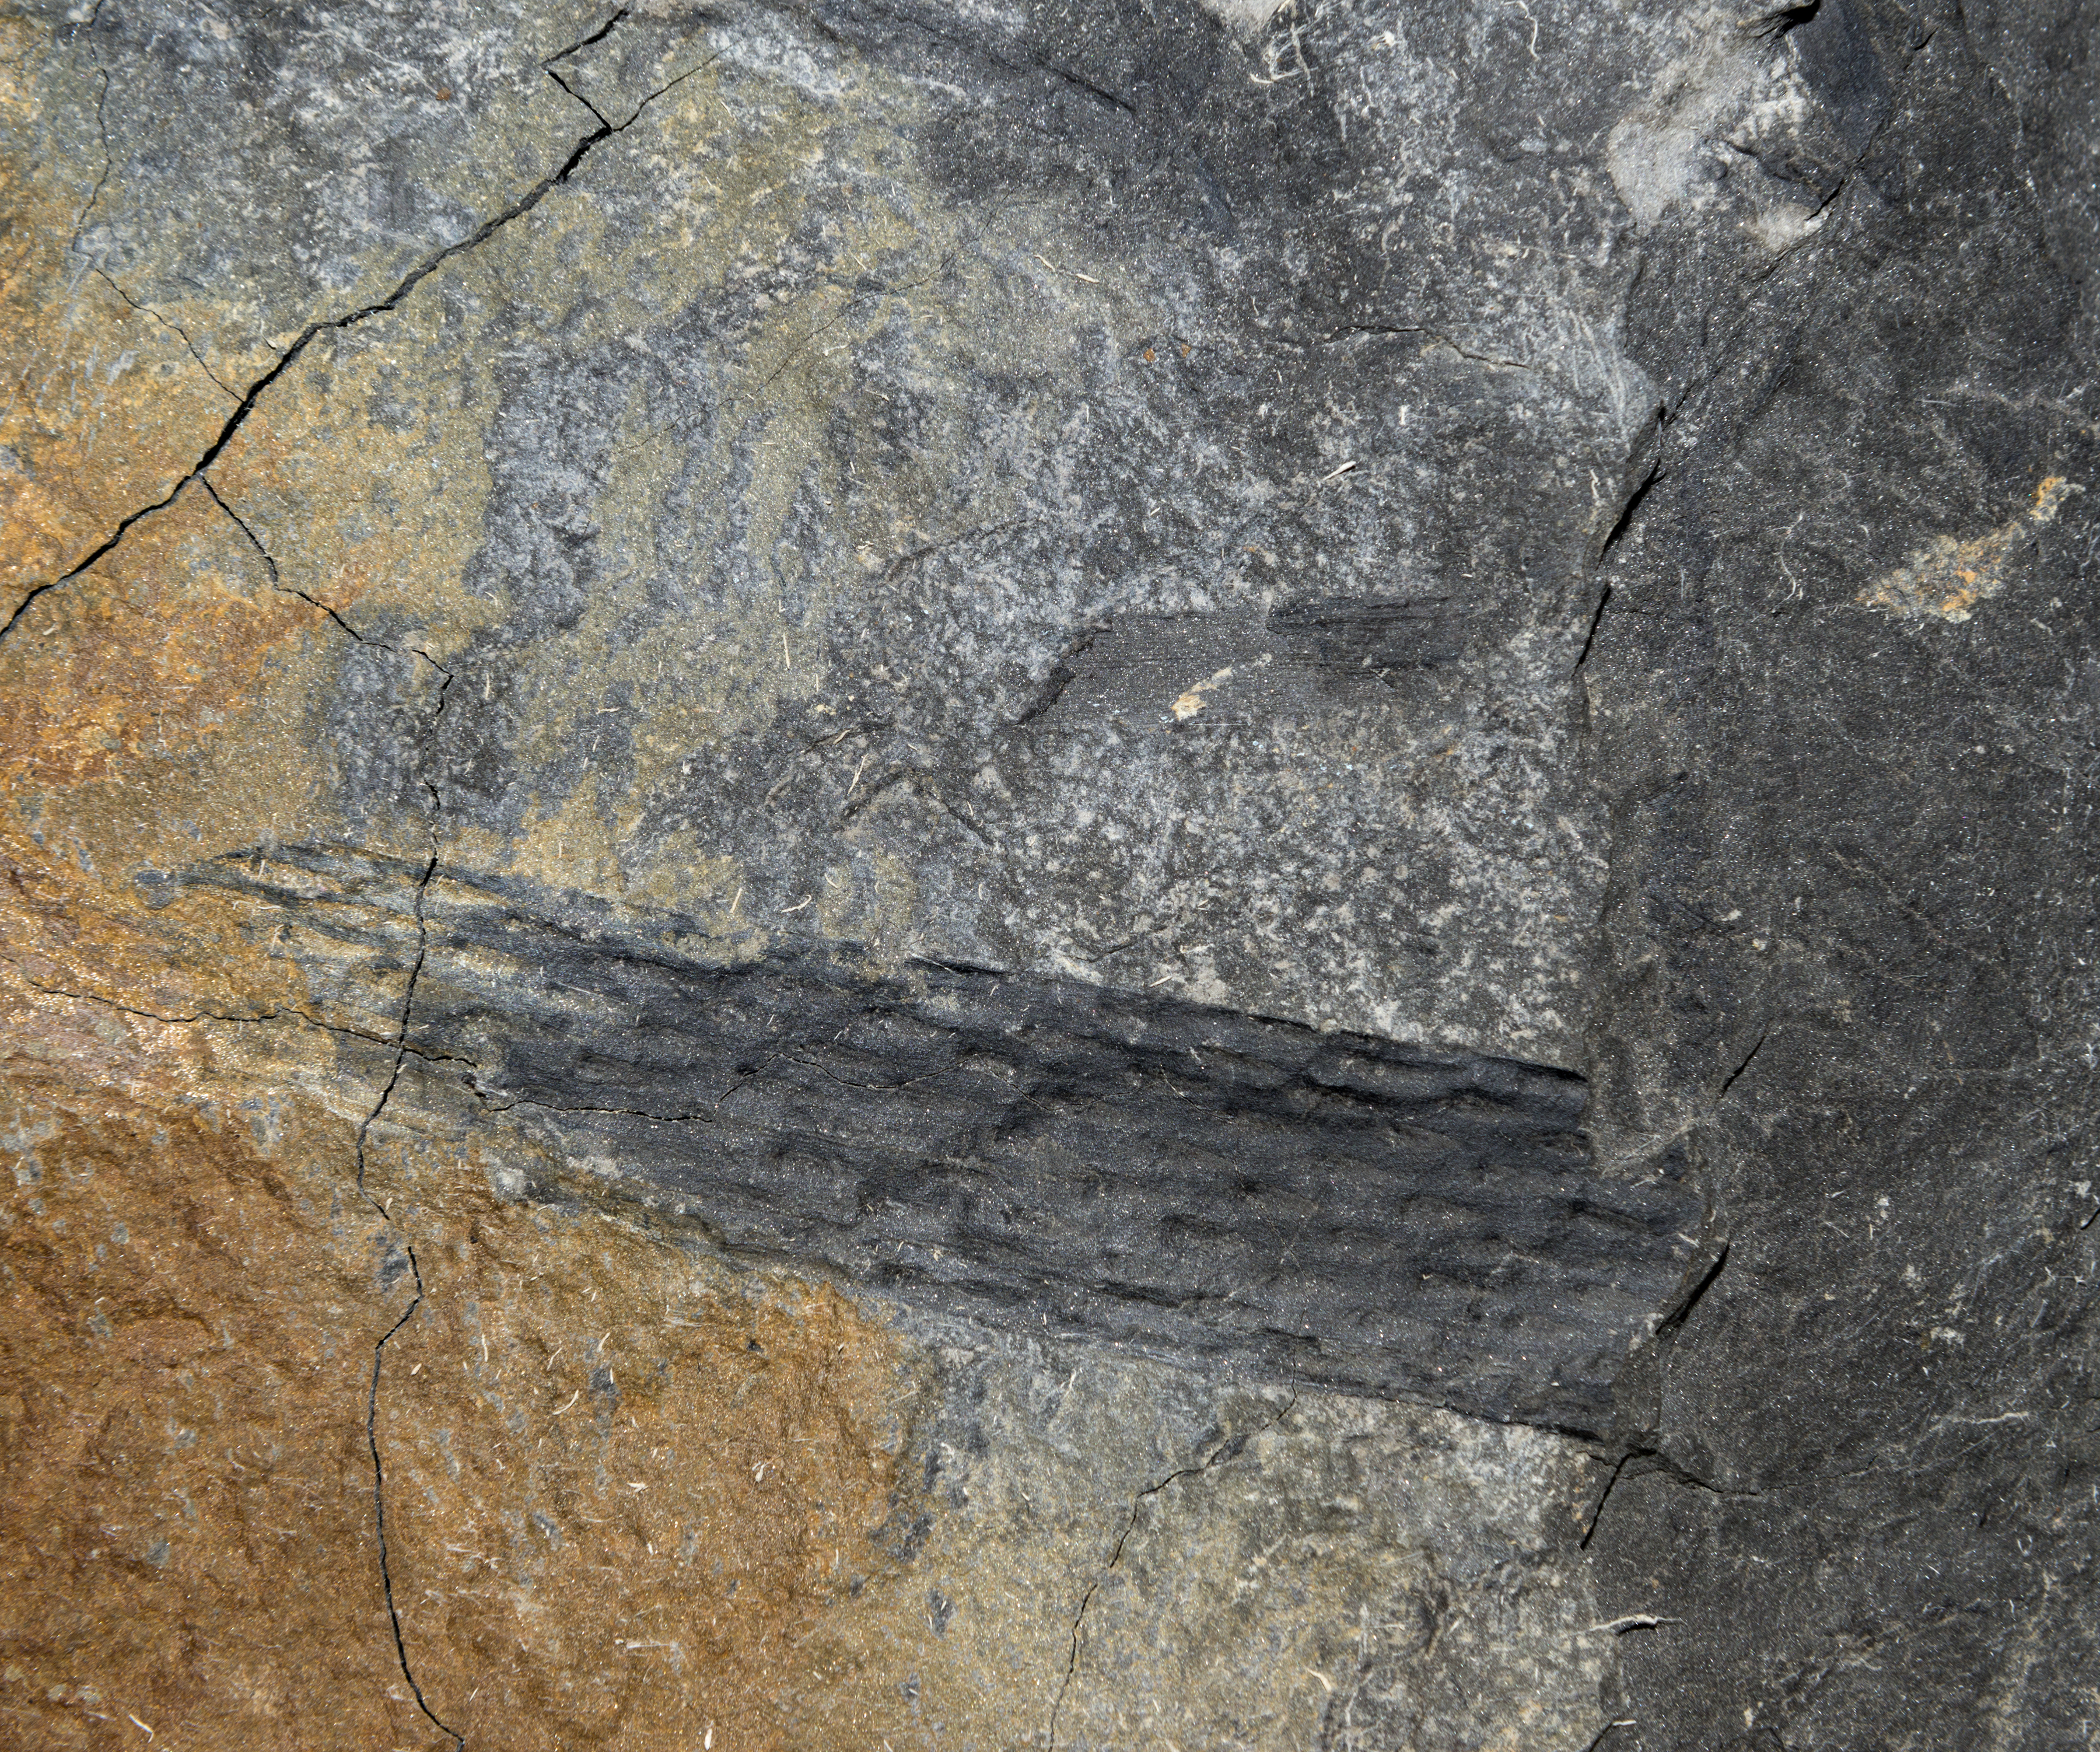 The Rock Most Likely to Contain Fossils